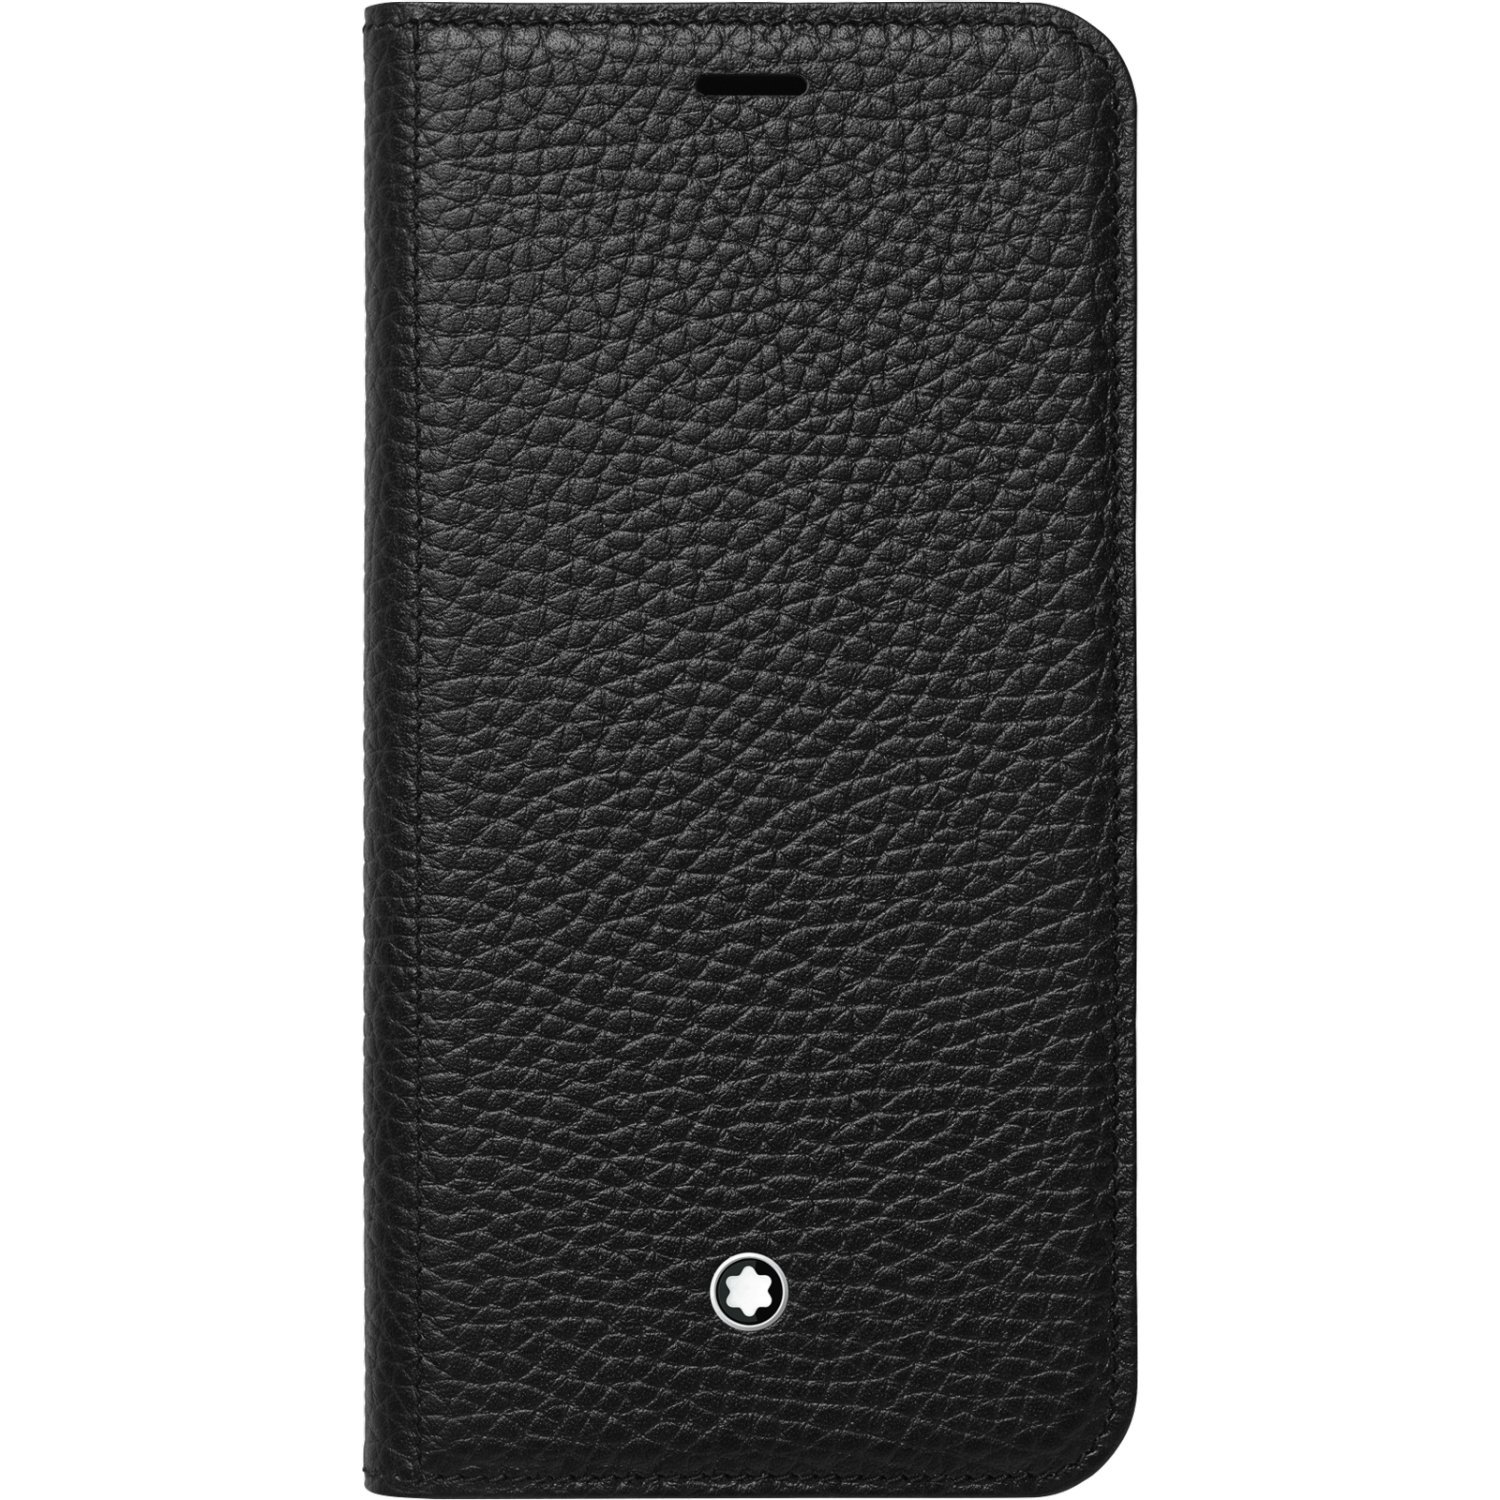 Genuine Original Official Montblanc Soft Grain Leather Flip Cover Case Meisterstuck 119111 for iPhone X